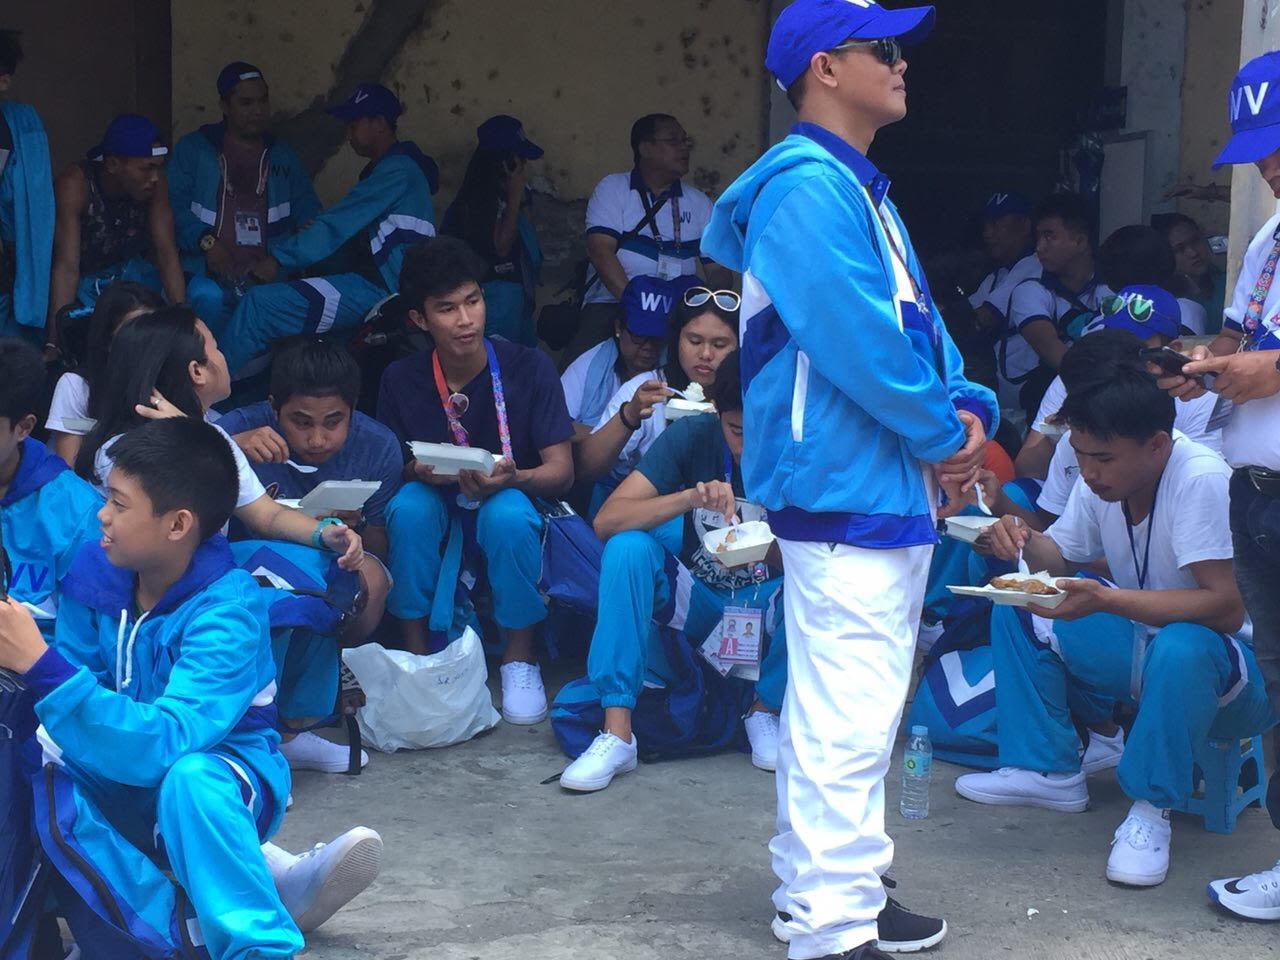 LUNCH TIME. The Western Visayas team eat their lunch just before the parade